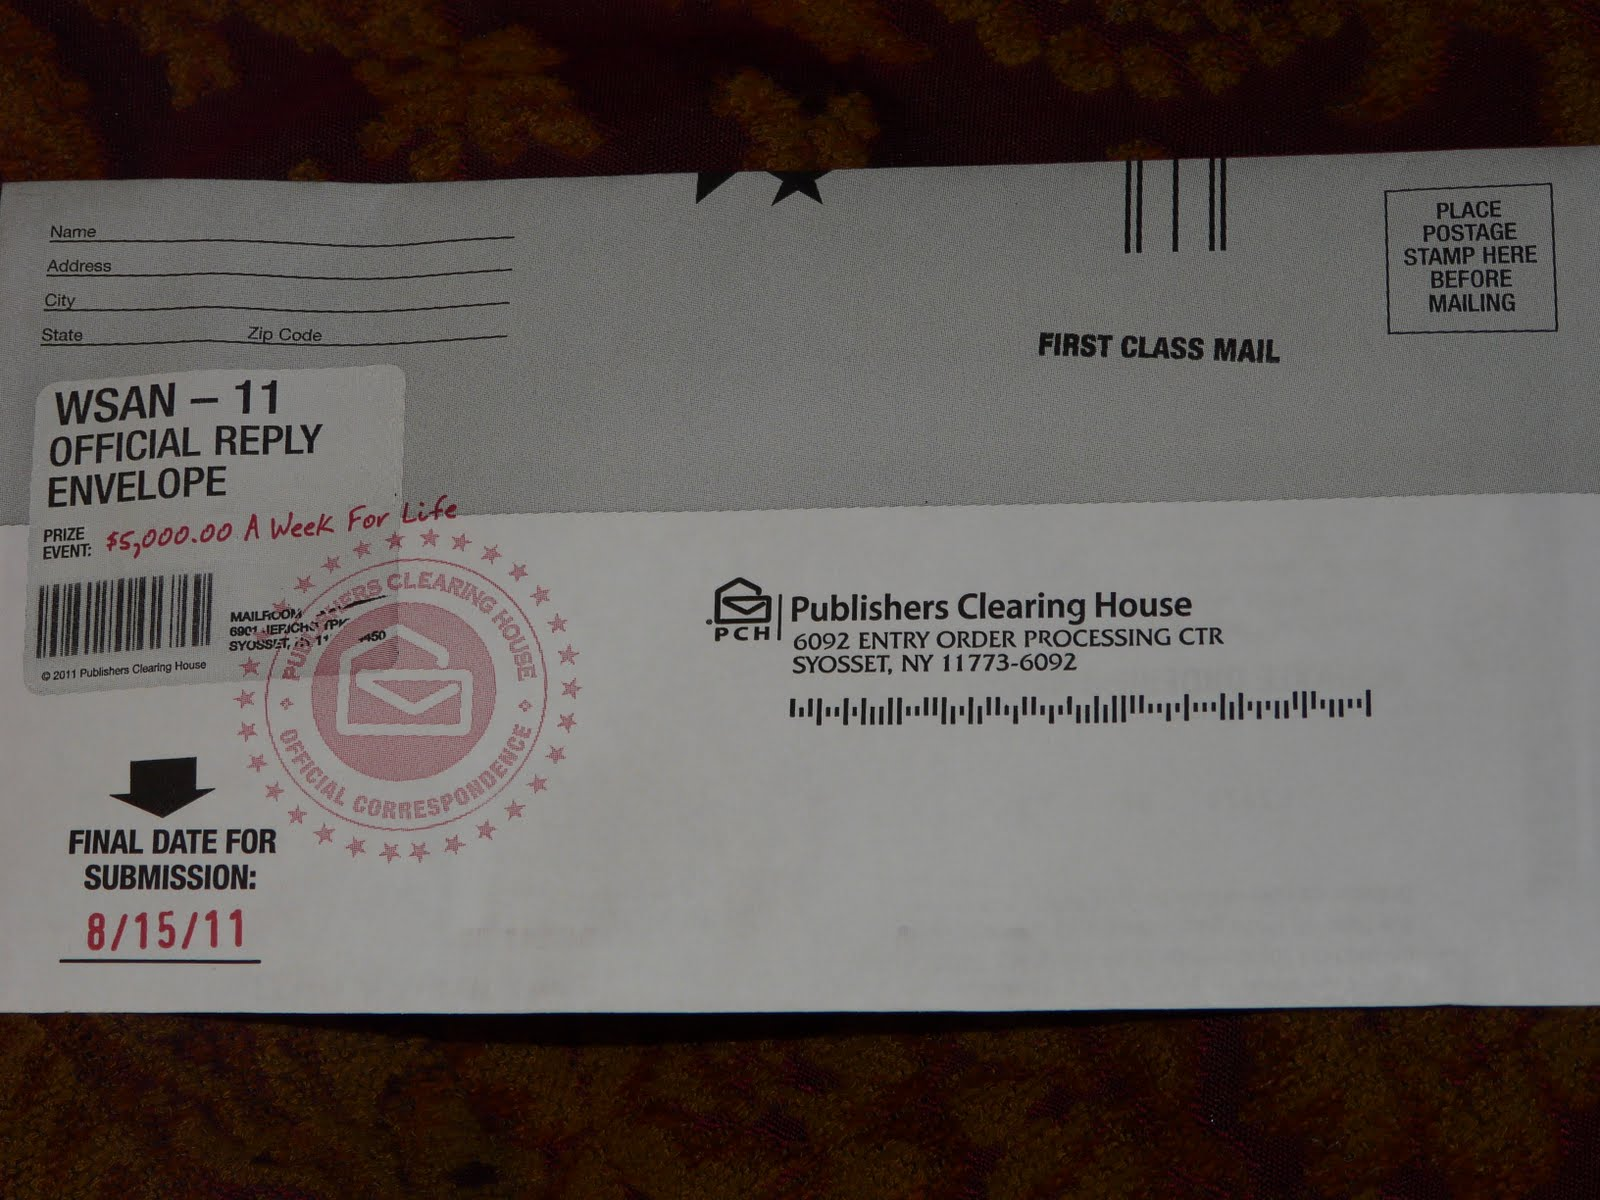 ... Junk Mail Dealing With The Publishers Clearing House Sweepstakes. They  Had Some Past Winners Listed On The Flier. It Gave The Personu0027s Name And  How Much ...